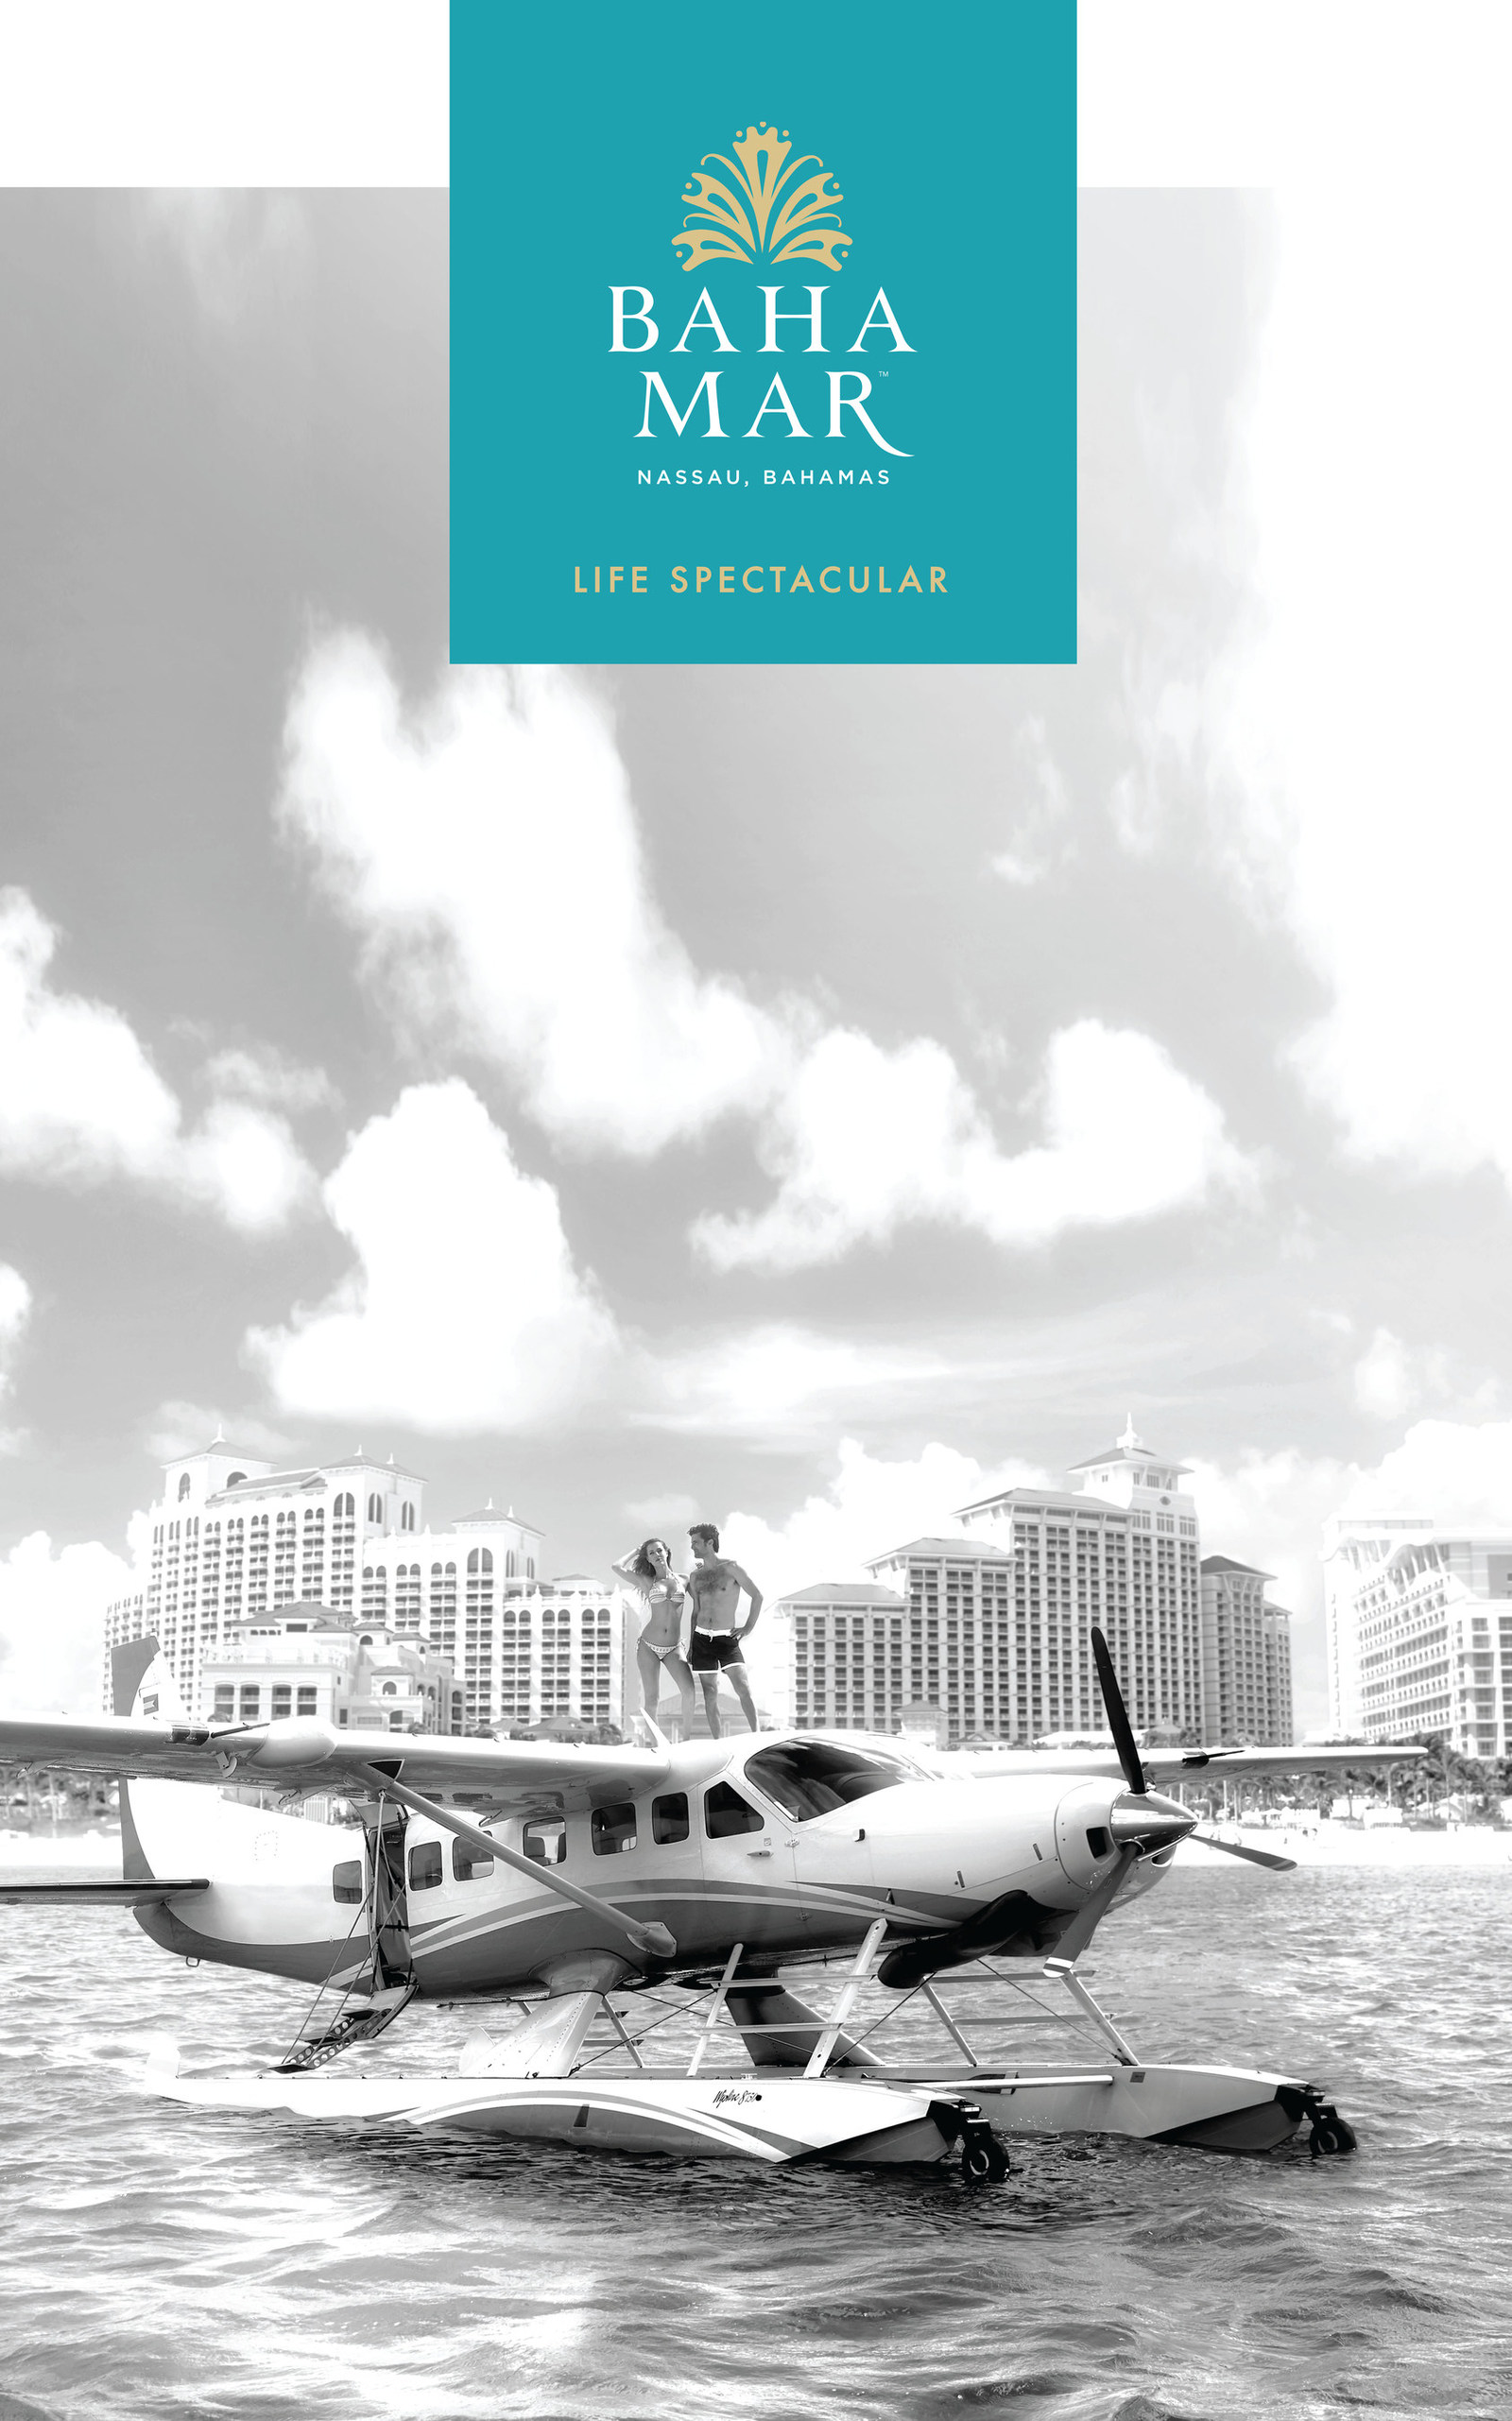 09_BHM_LAUNCH_POSTER_SEAPLANE.jpg